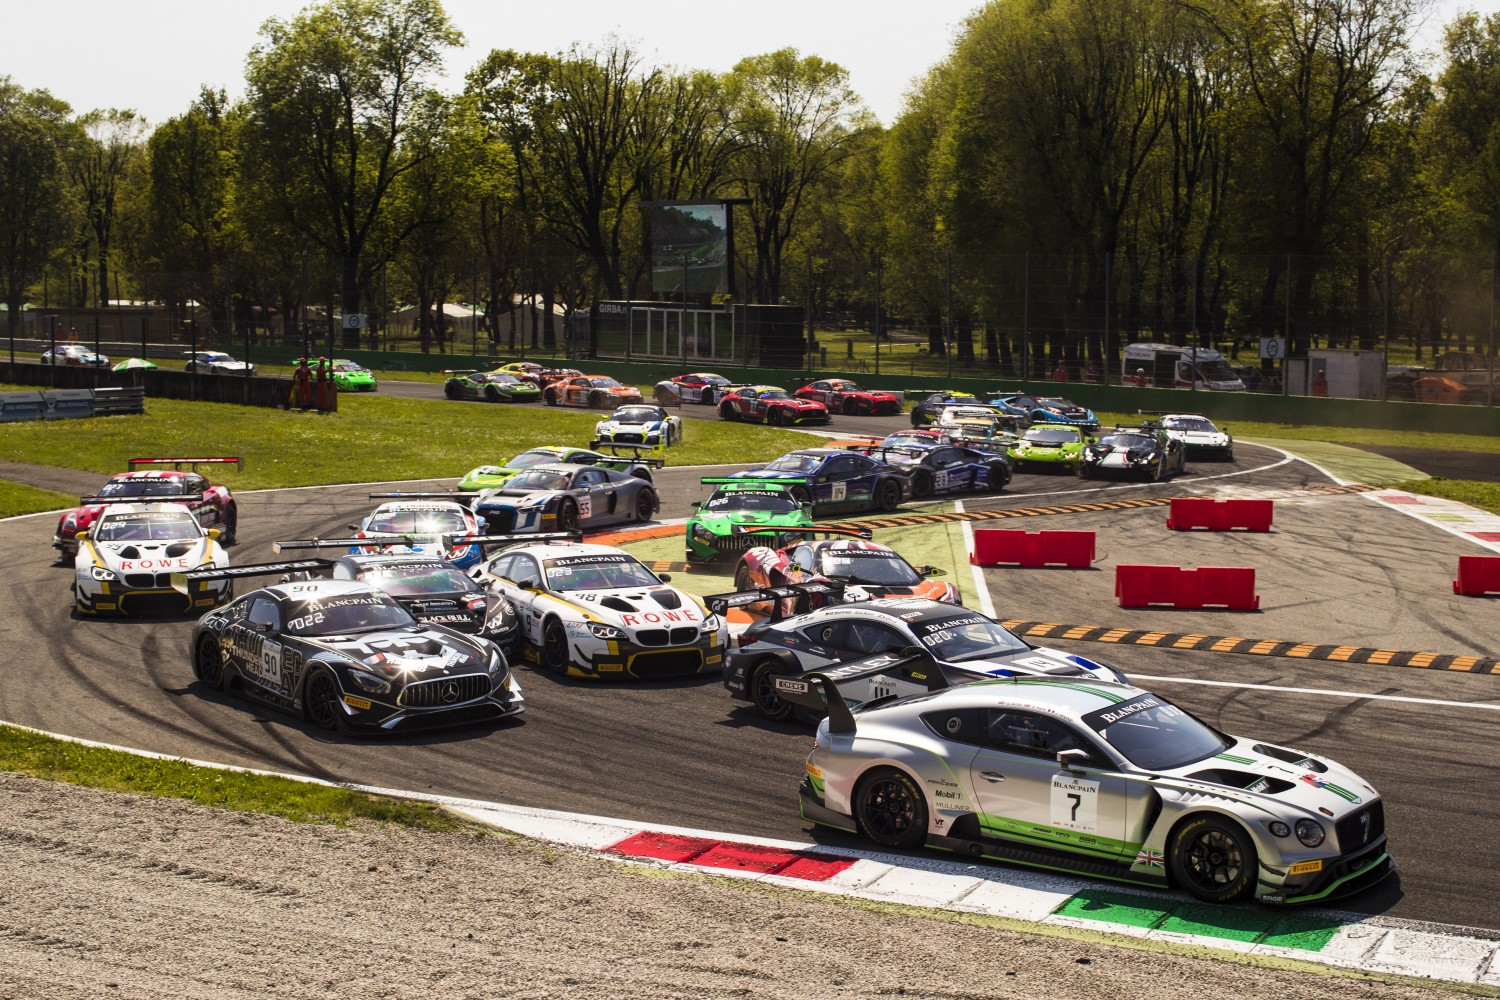 BENTLEY MOTORSPORT ANNOUNCES EXPANDED ENDURANCE  PROGRAMME FOR 2019